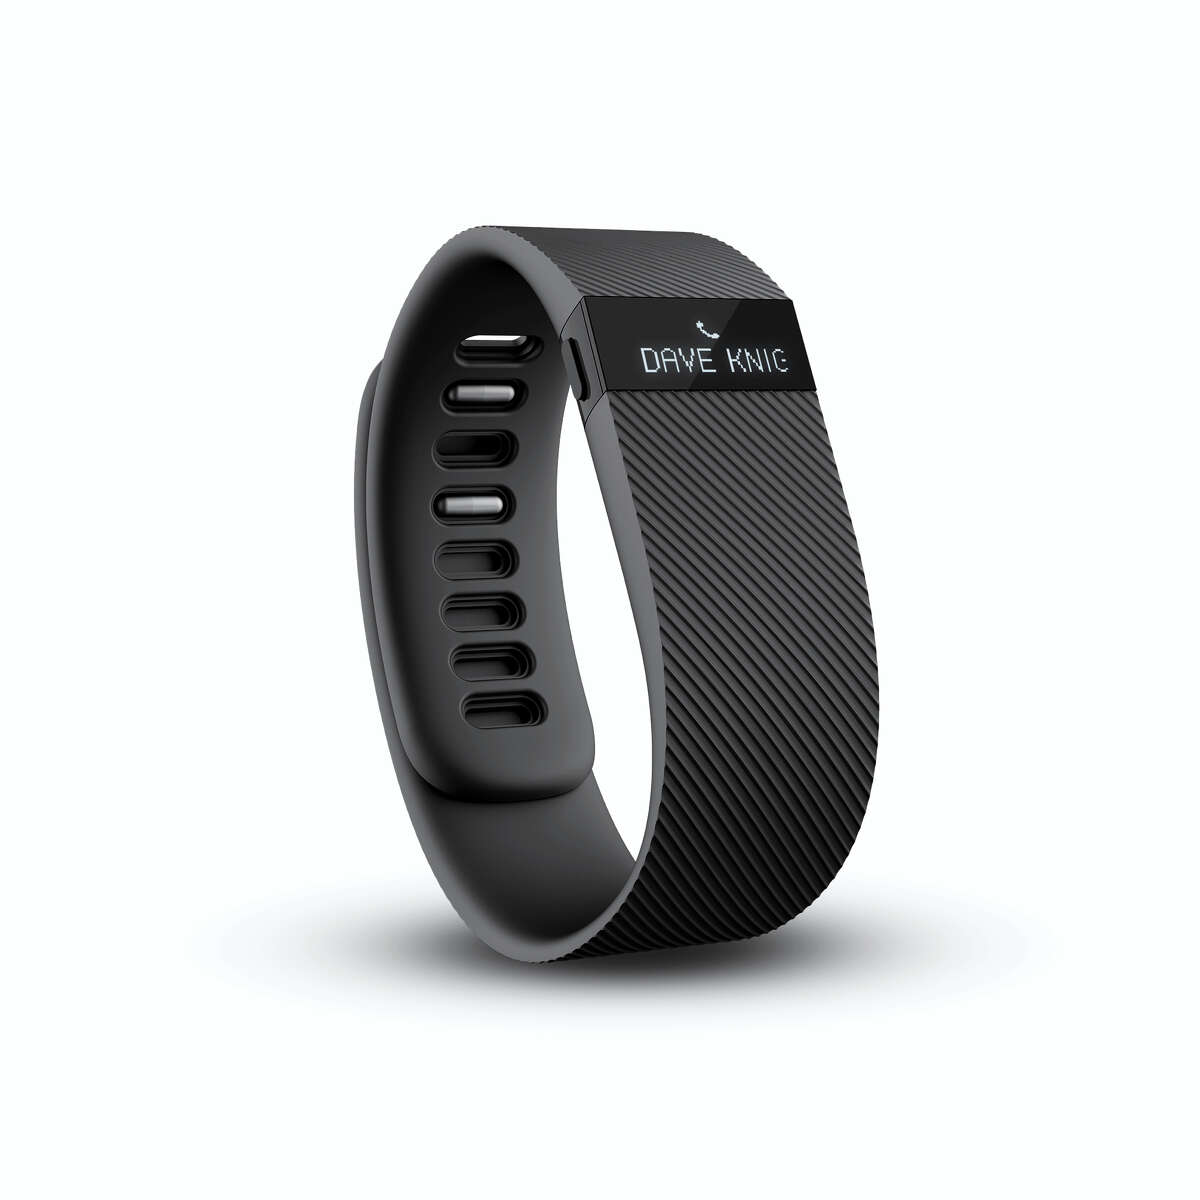 The Fitbit Charge in black, showing a phone call.